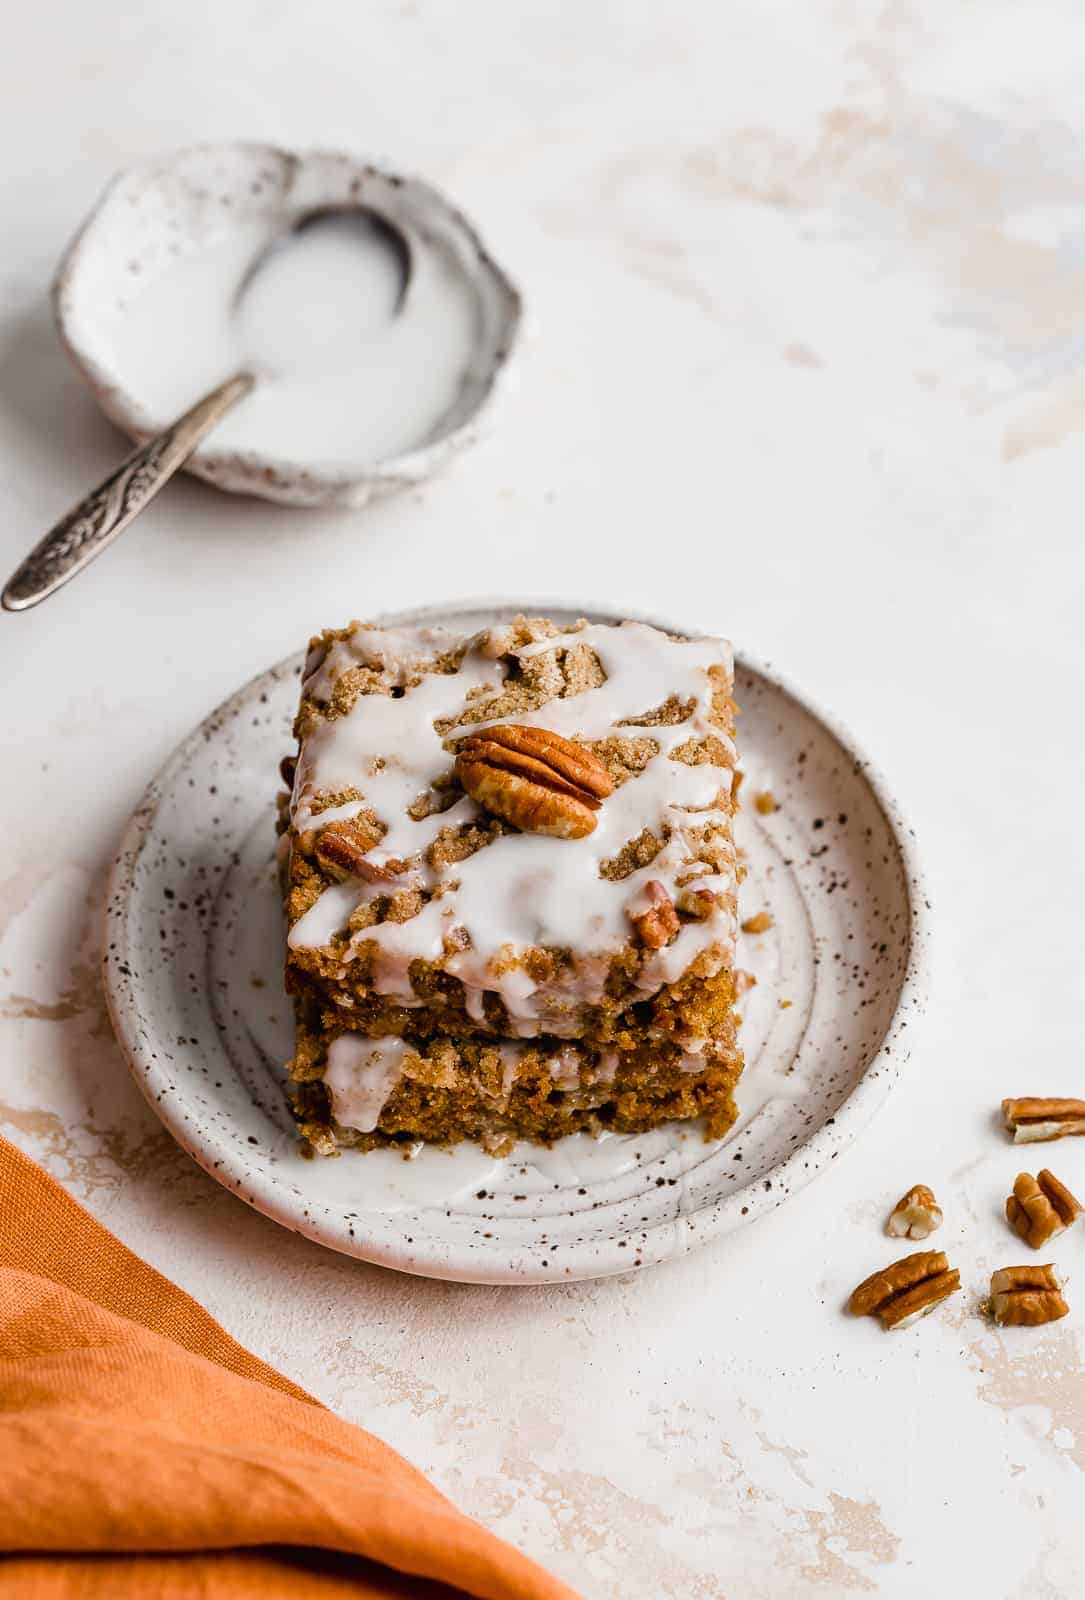 Pumpkin Coffee Cake with glaze, on white plate with chopped pecans next to the plate.